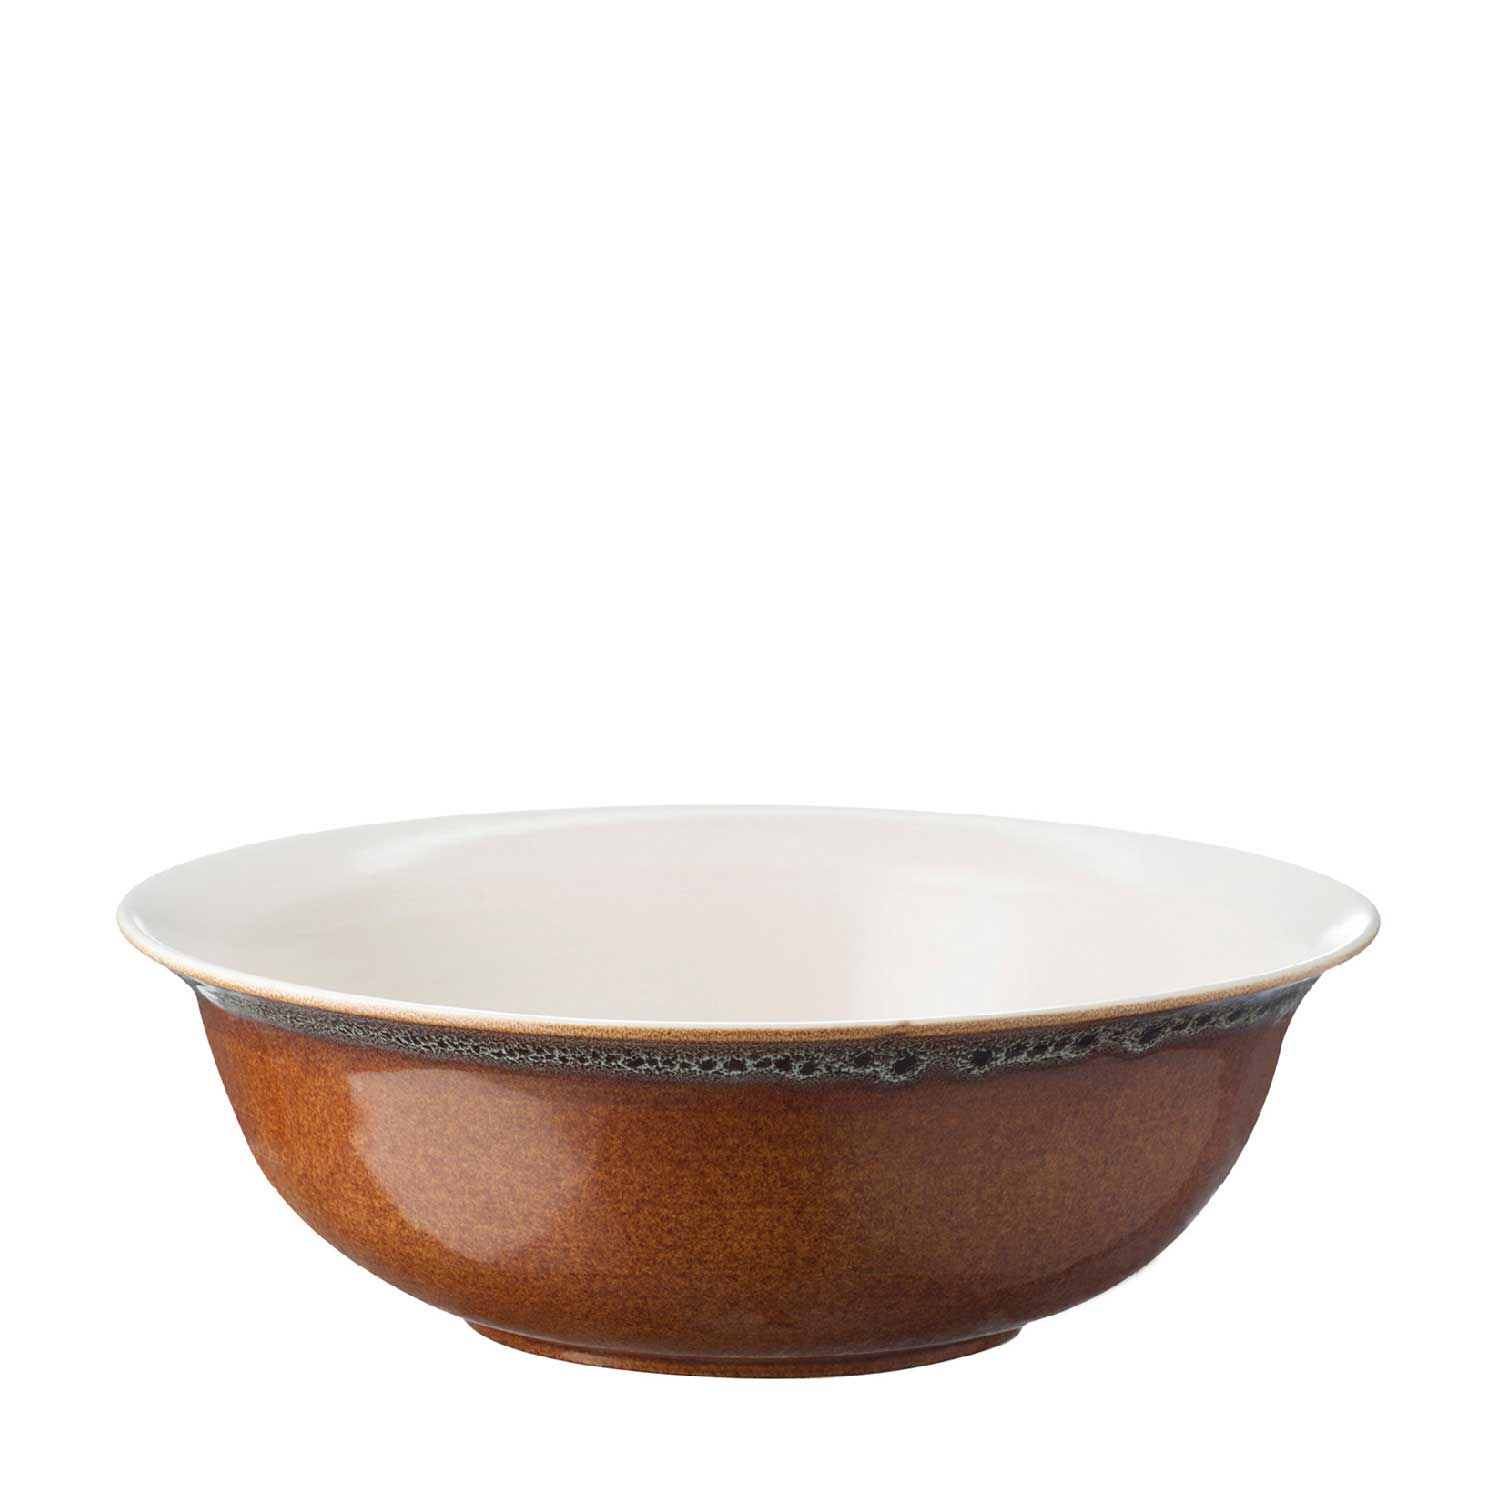 CLASSIC CURVED SERVING BOWL 3